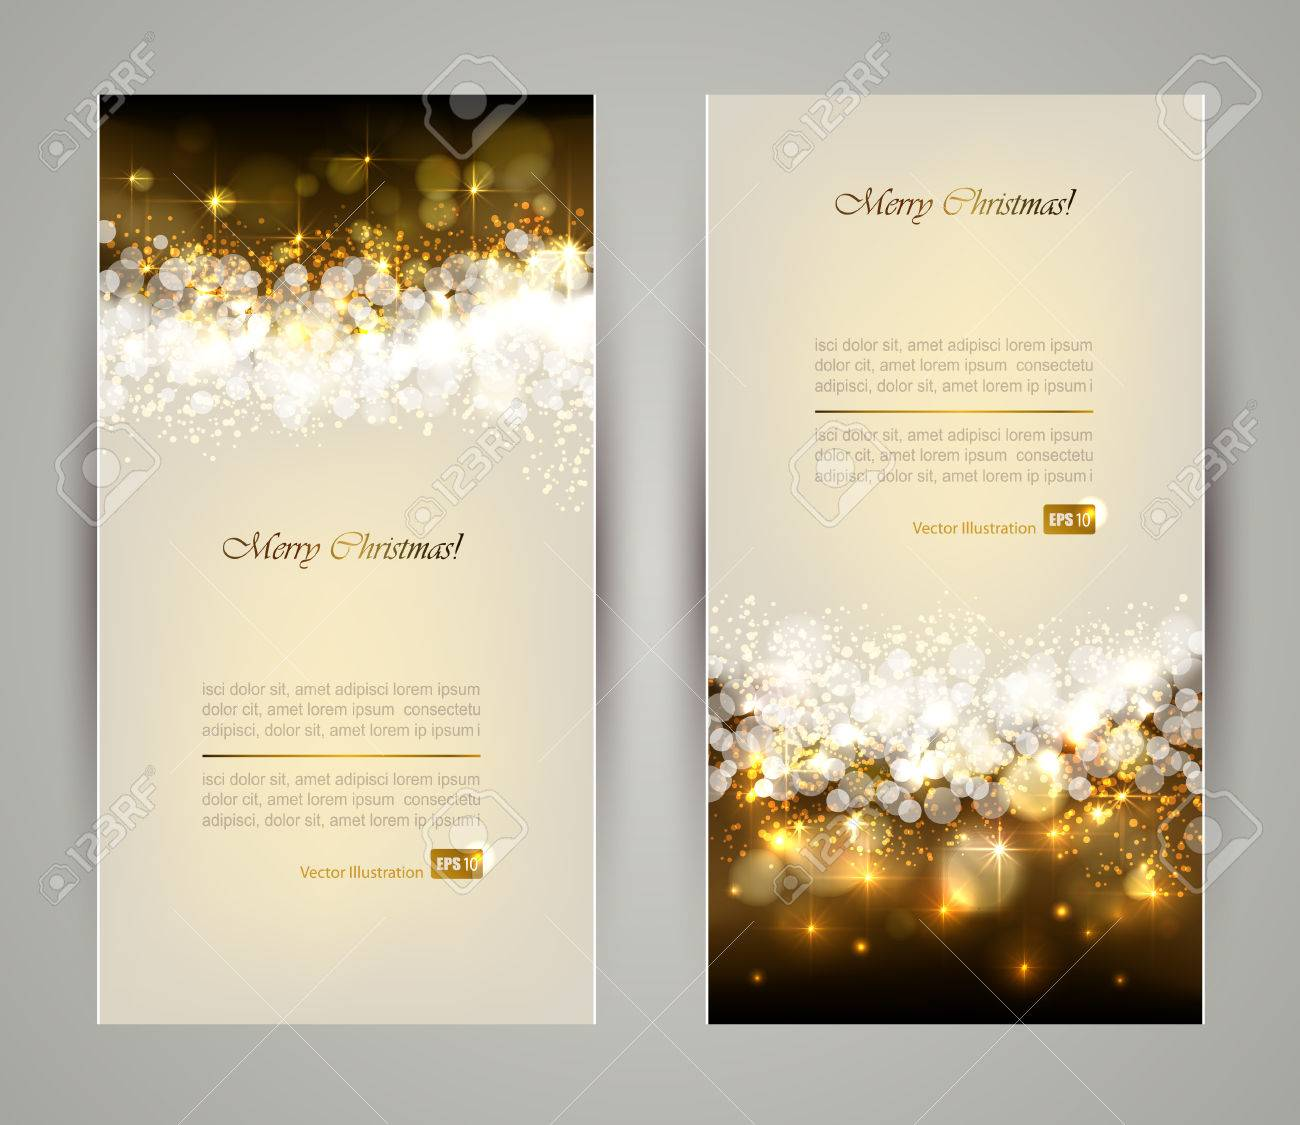 Two elegant christmas greeting cards royalty free cliparts vectors two elegant christmas greeting cards stock vector 25497589 m4hsunfo